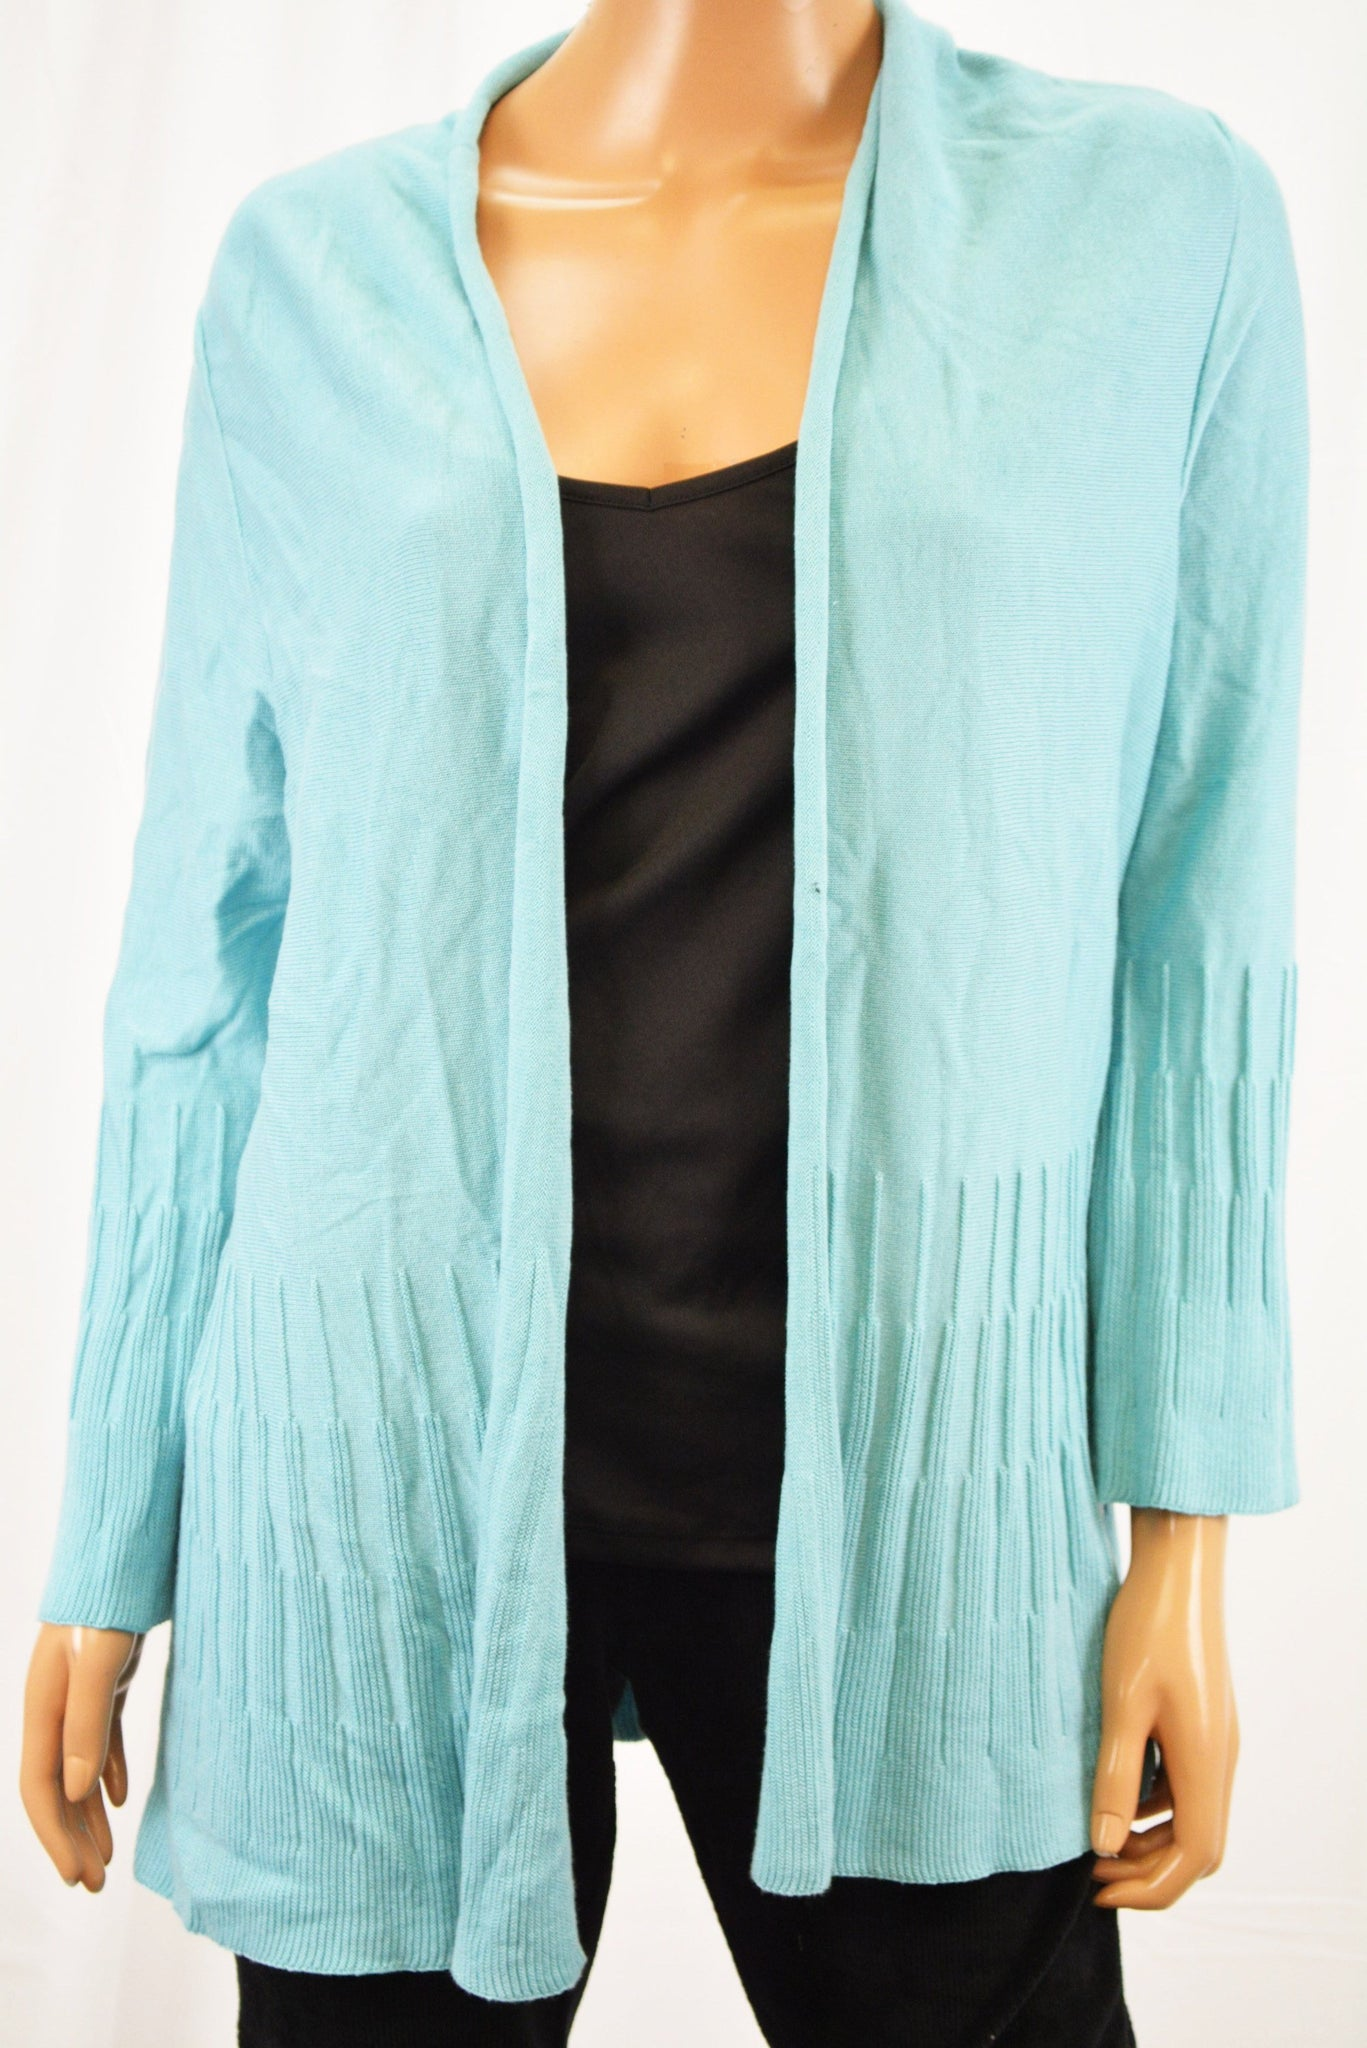 Charter Club Women's Blue Open-Front Ribbed Cardigan Medium M